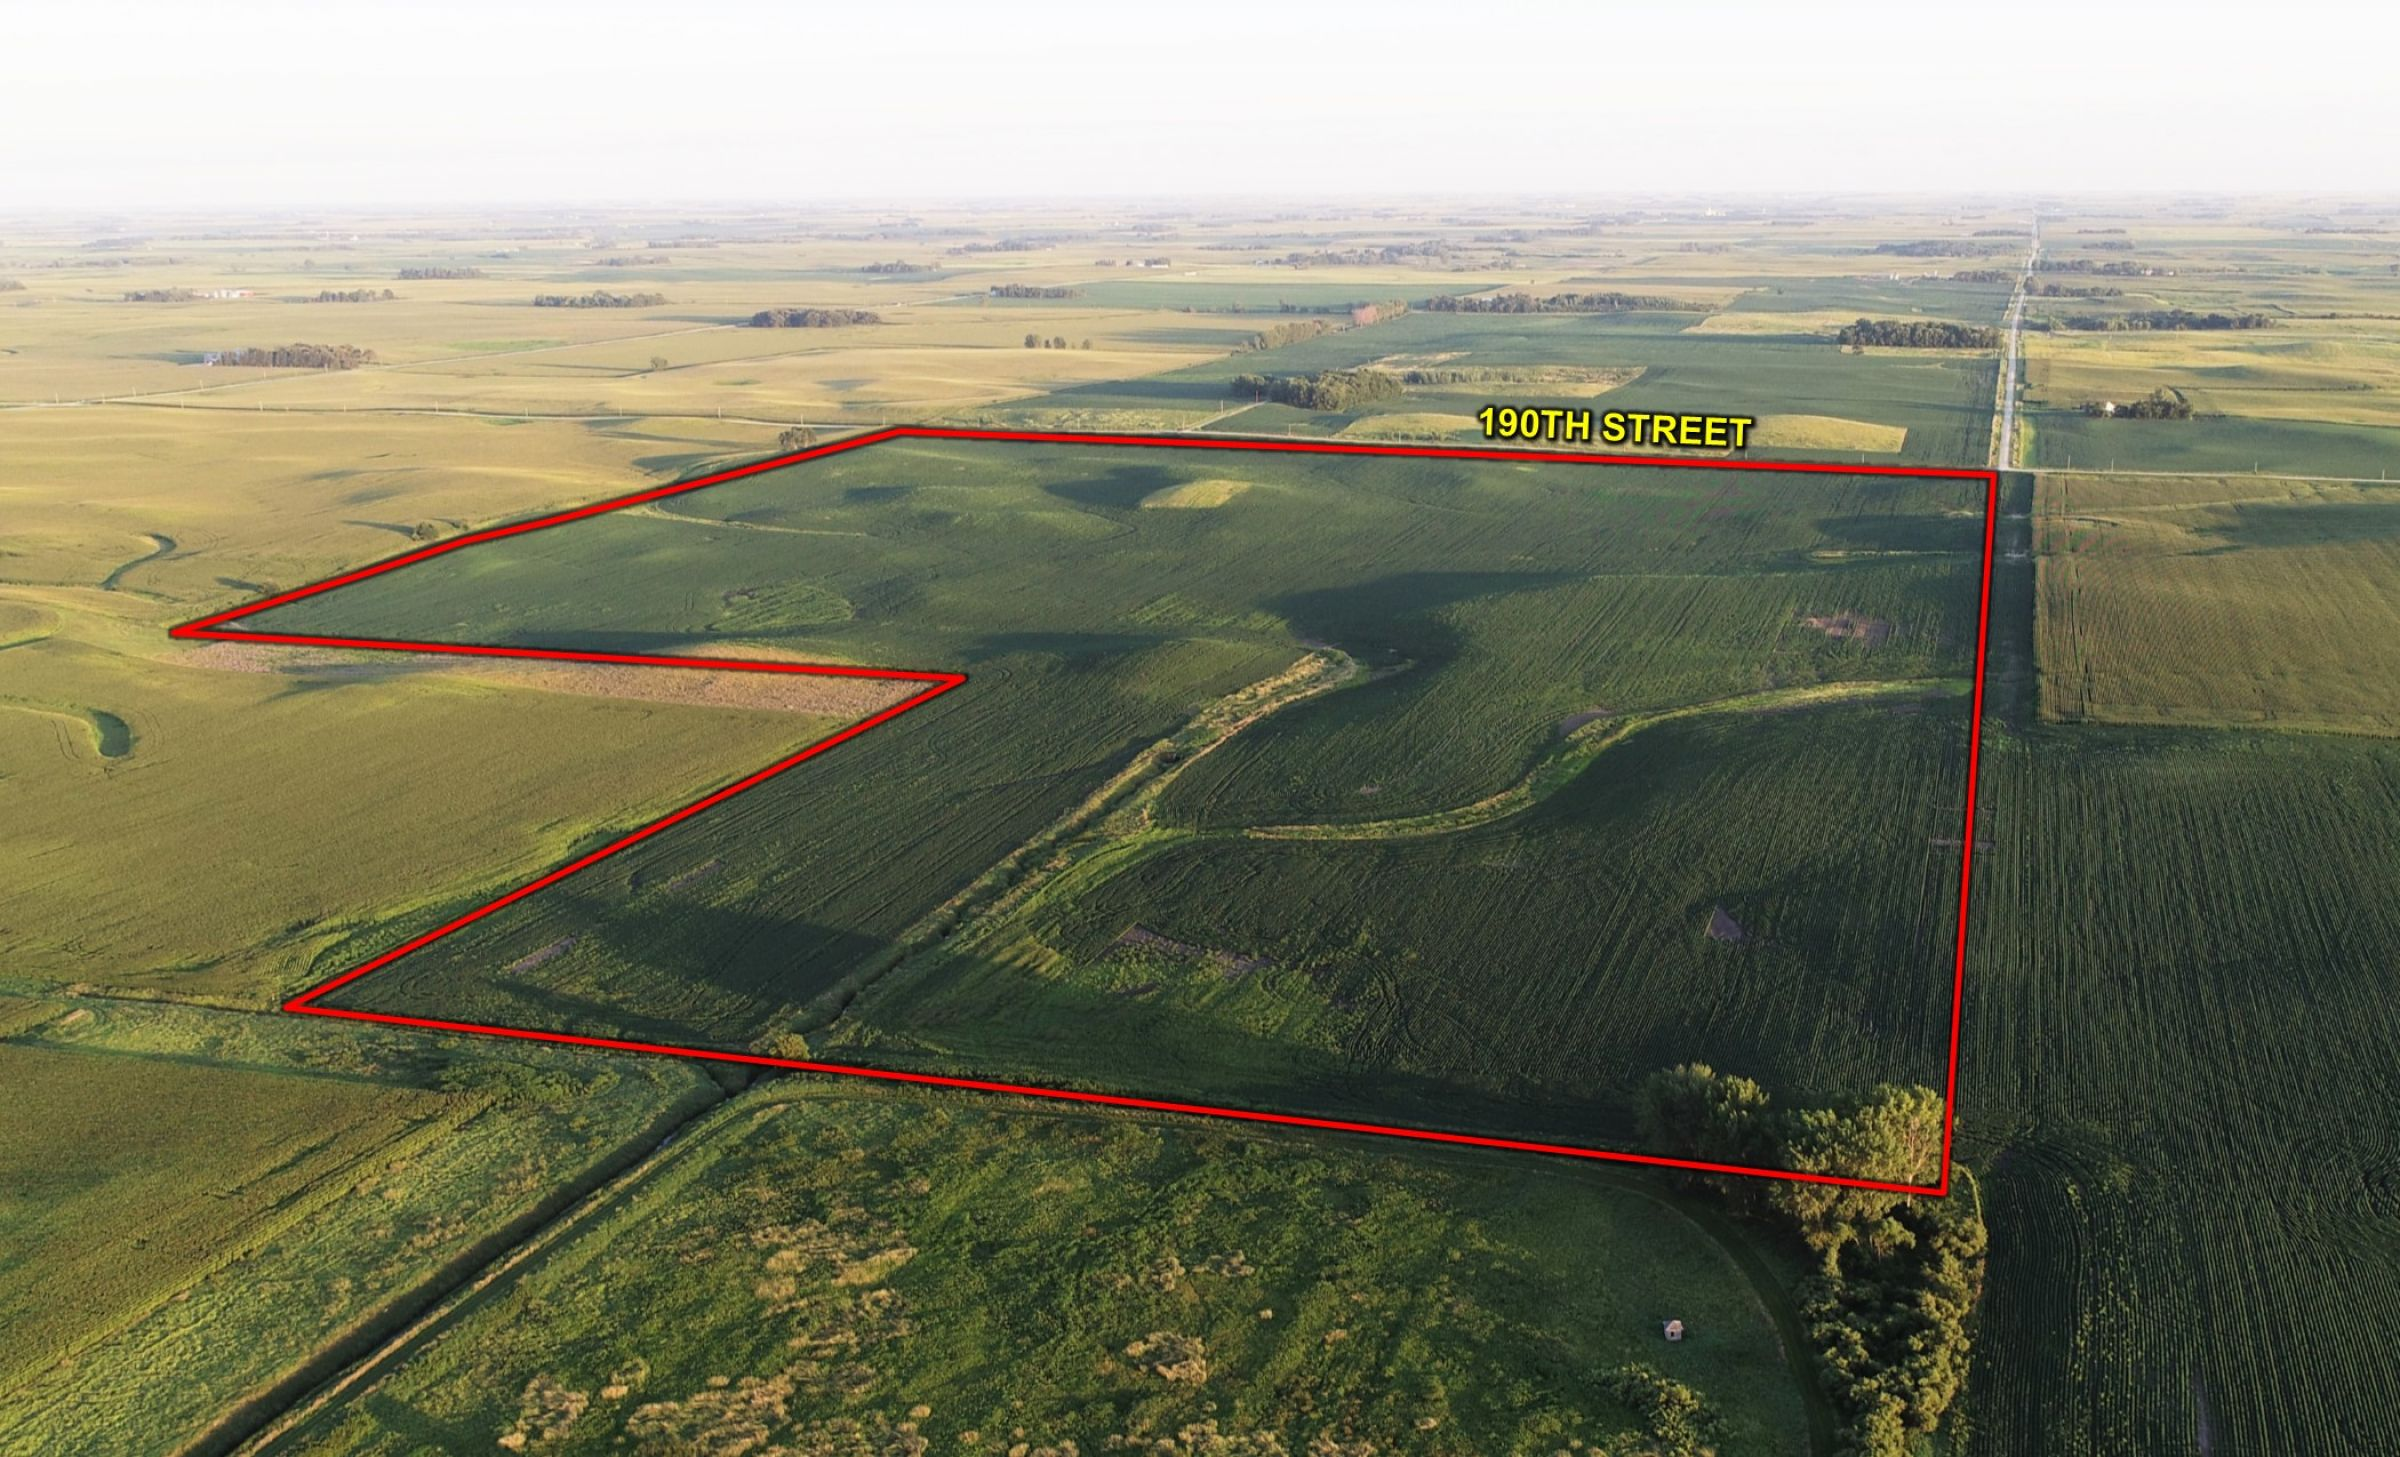 14763-cerro-gordo-farmland-for-sale-200-acres-ml-0-2019-11-07-180005.jpg